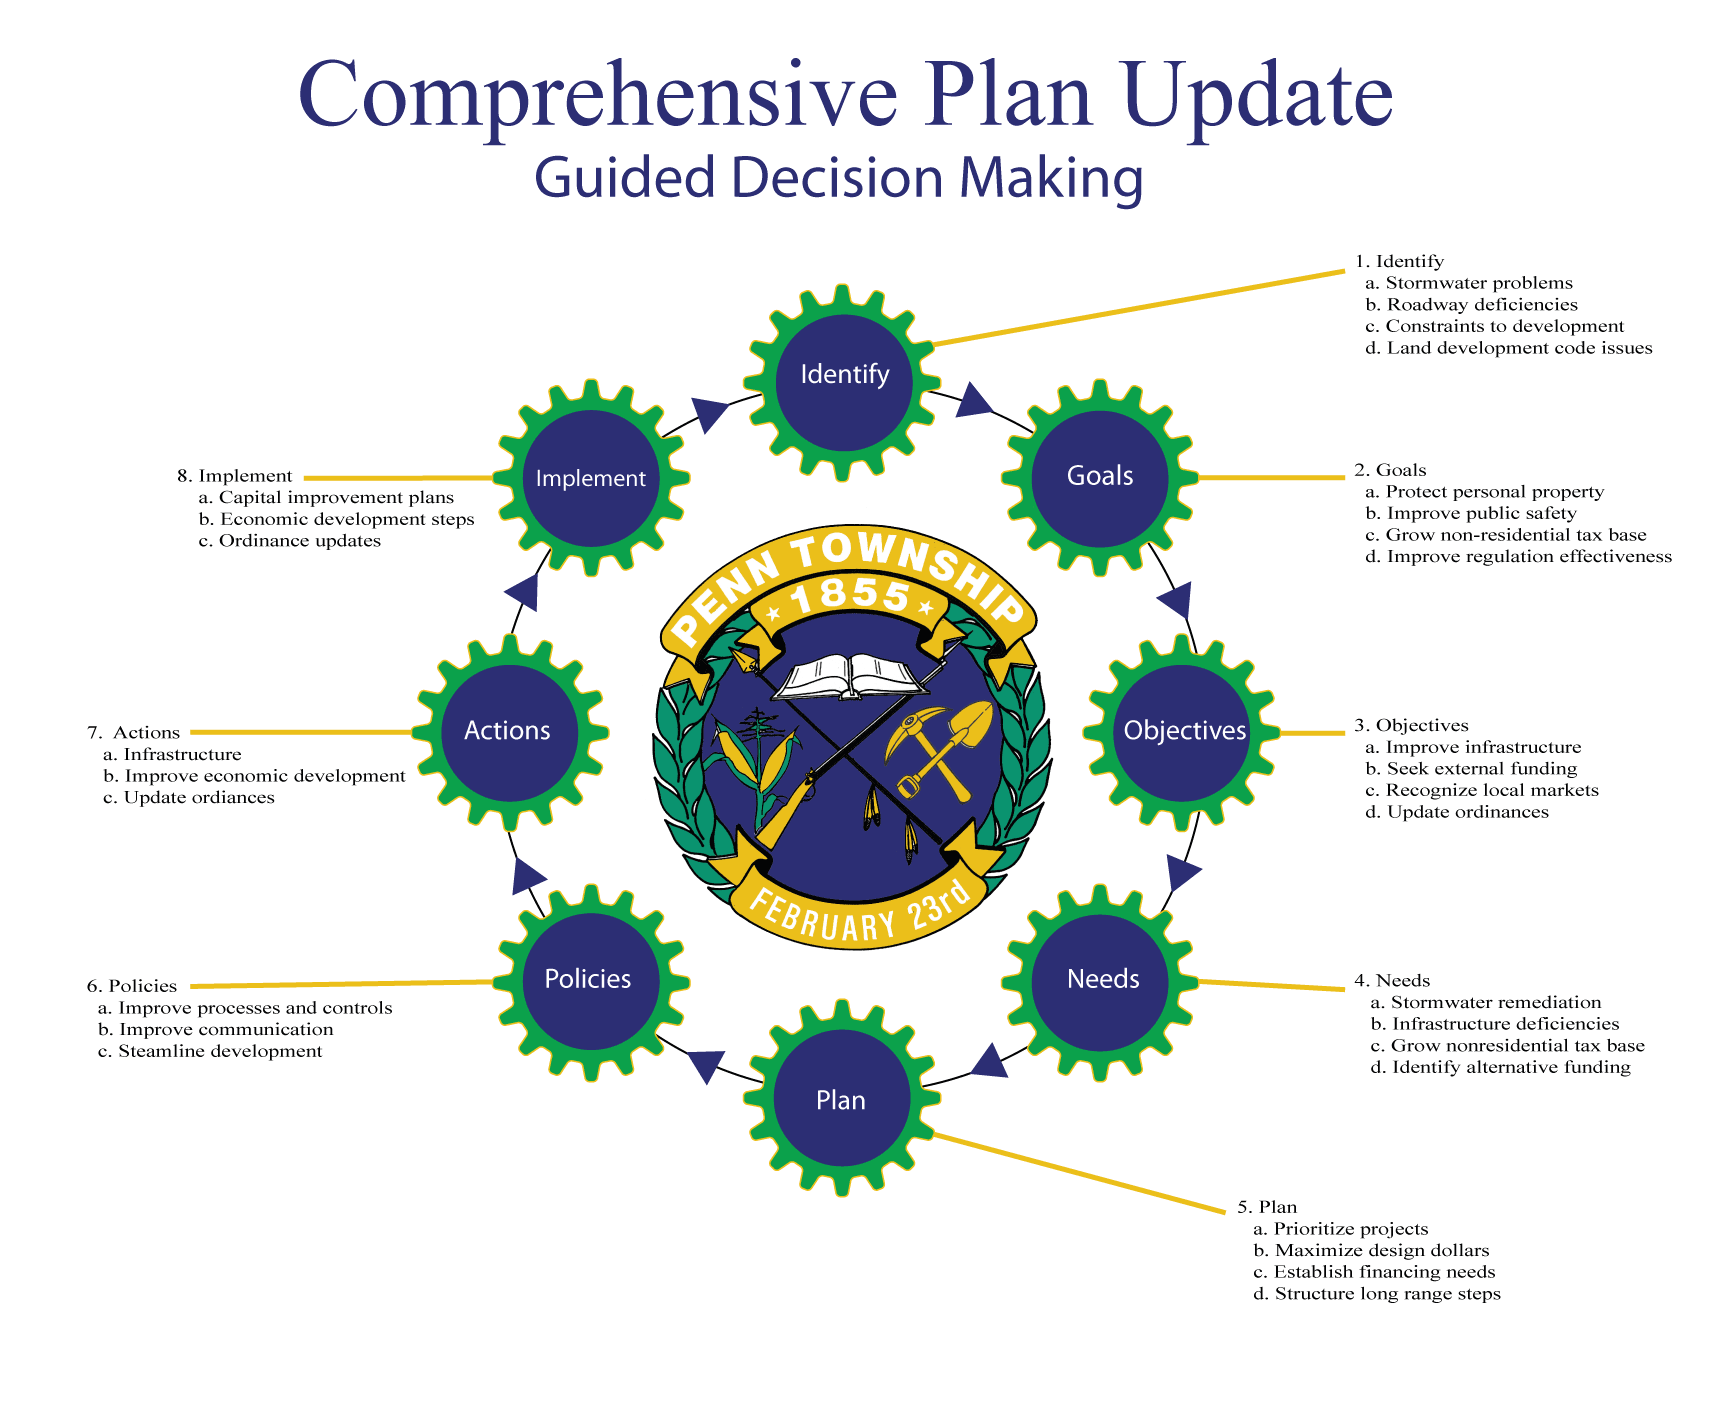 Comprehensive Plan Update - Guided Decision Making Flow Chart